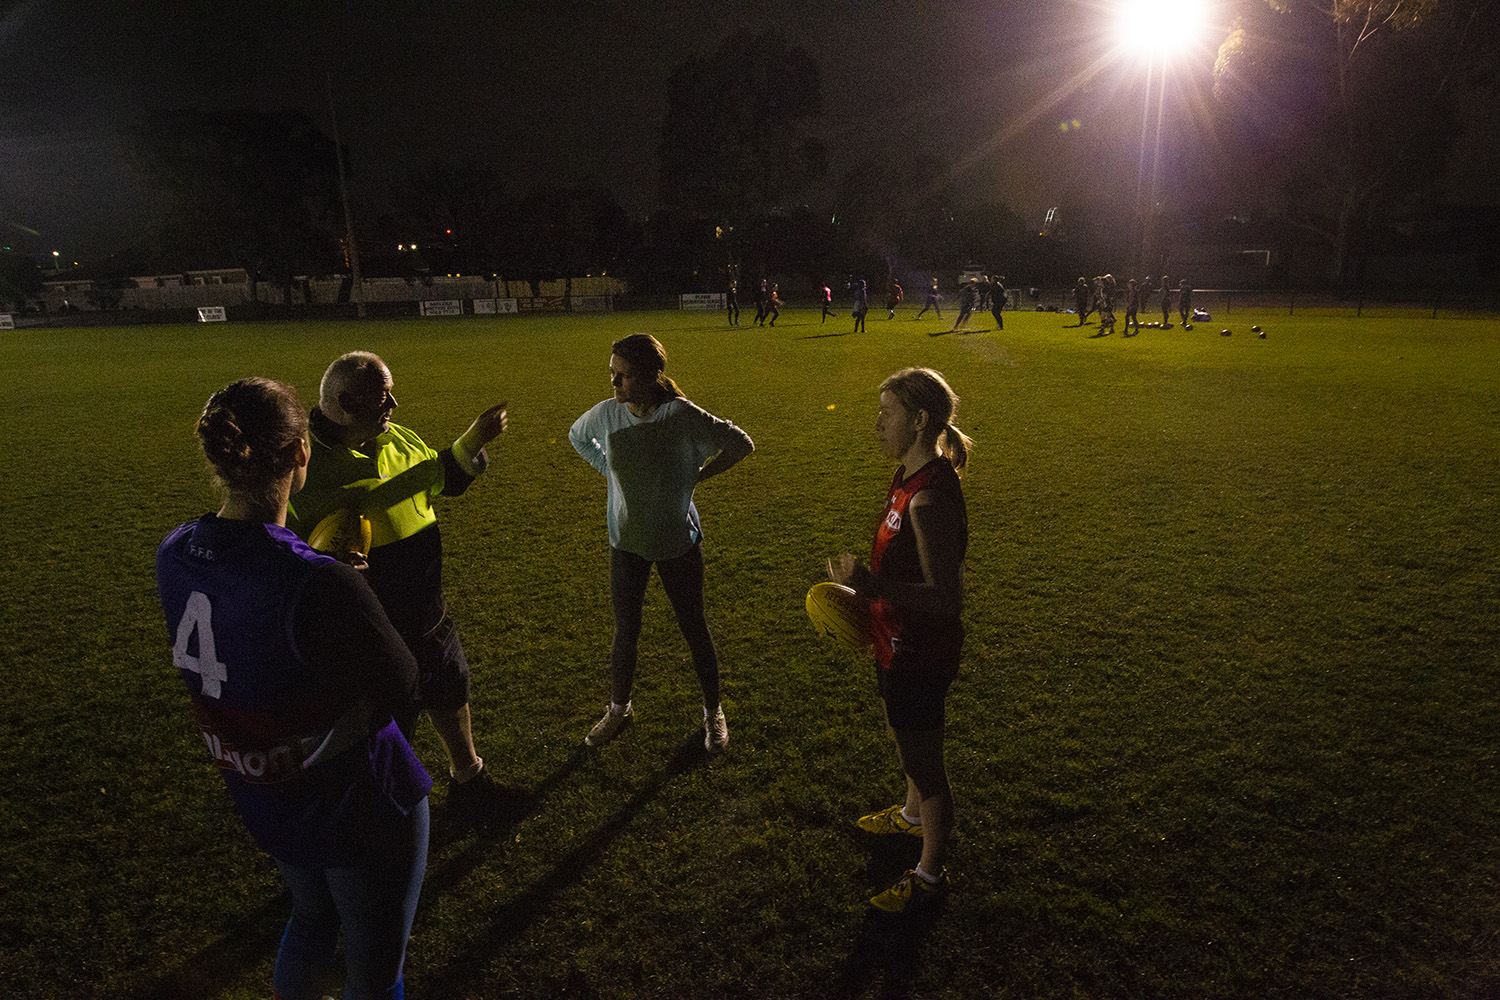 Most training was at night, using one end of the oval used for the masters men's training. Despite the frequently miserable Melbourne winter conditions, the team was enthusiastic and eager to learn.